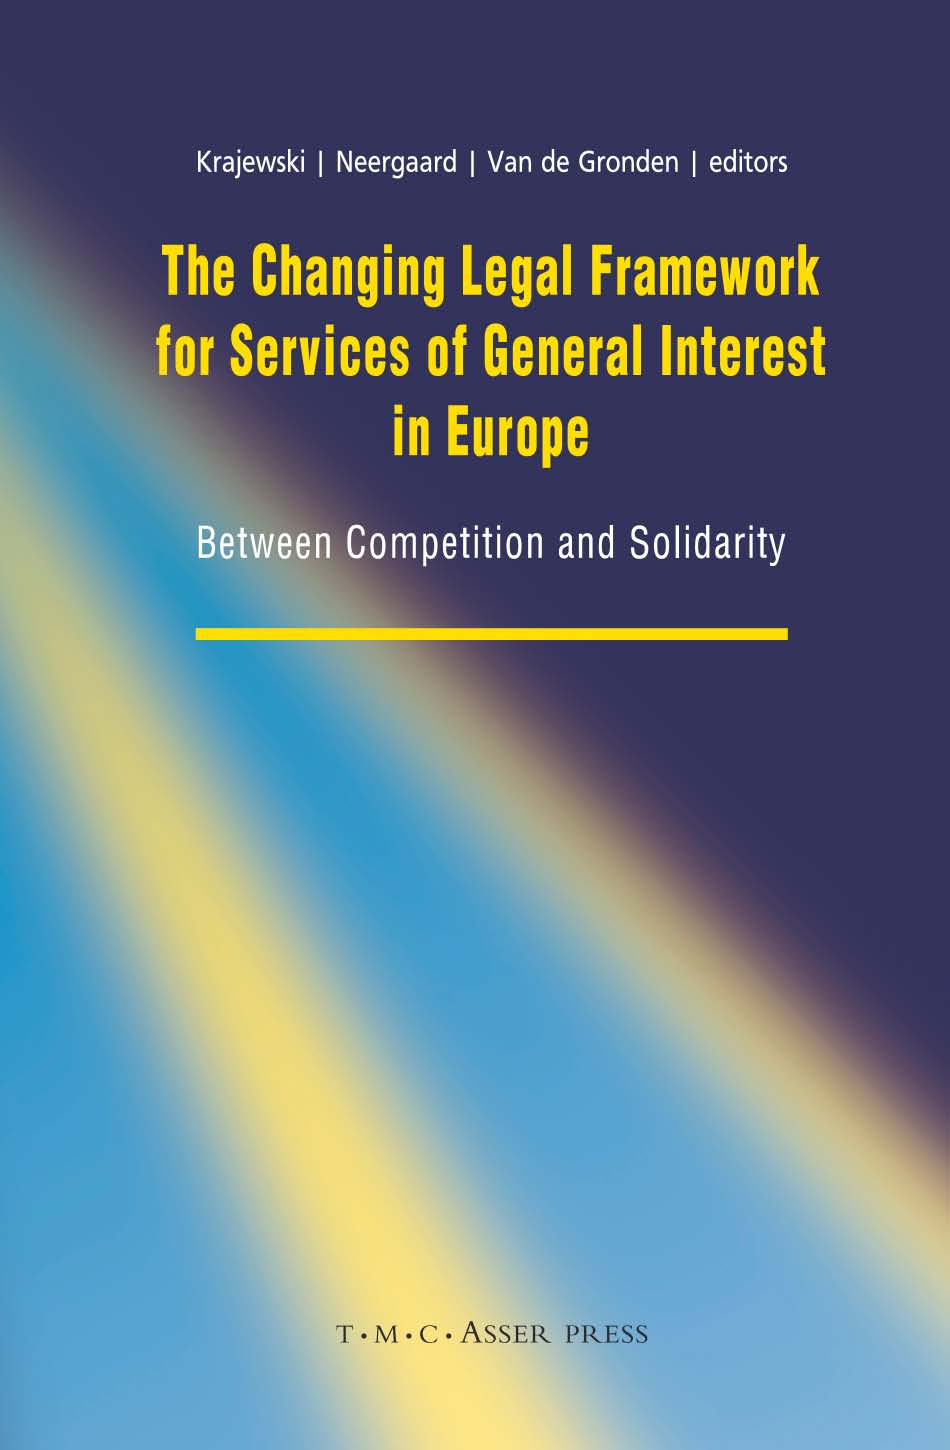 The Changing Legal Framework for Services of General Interest in Europe - Between Competition and Solidarity